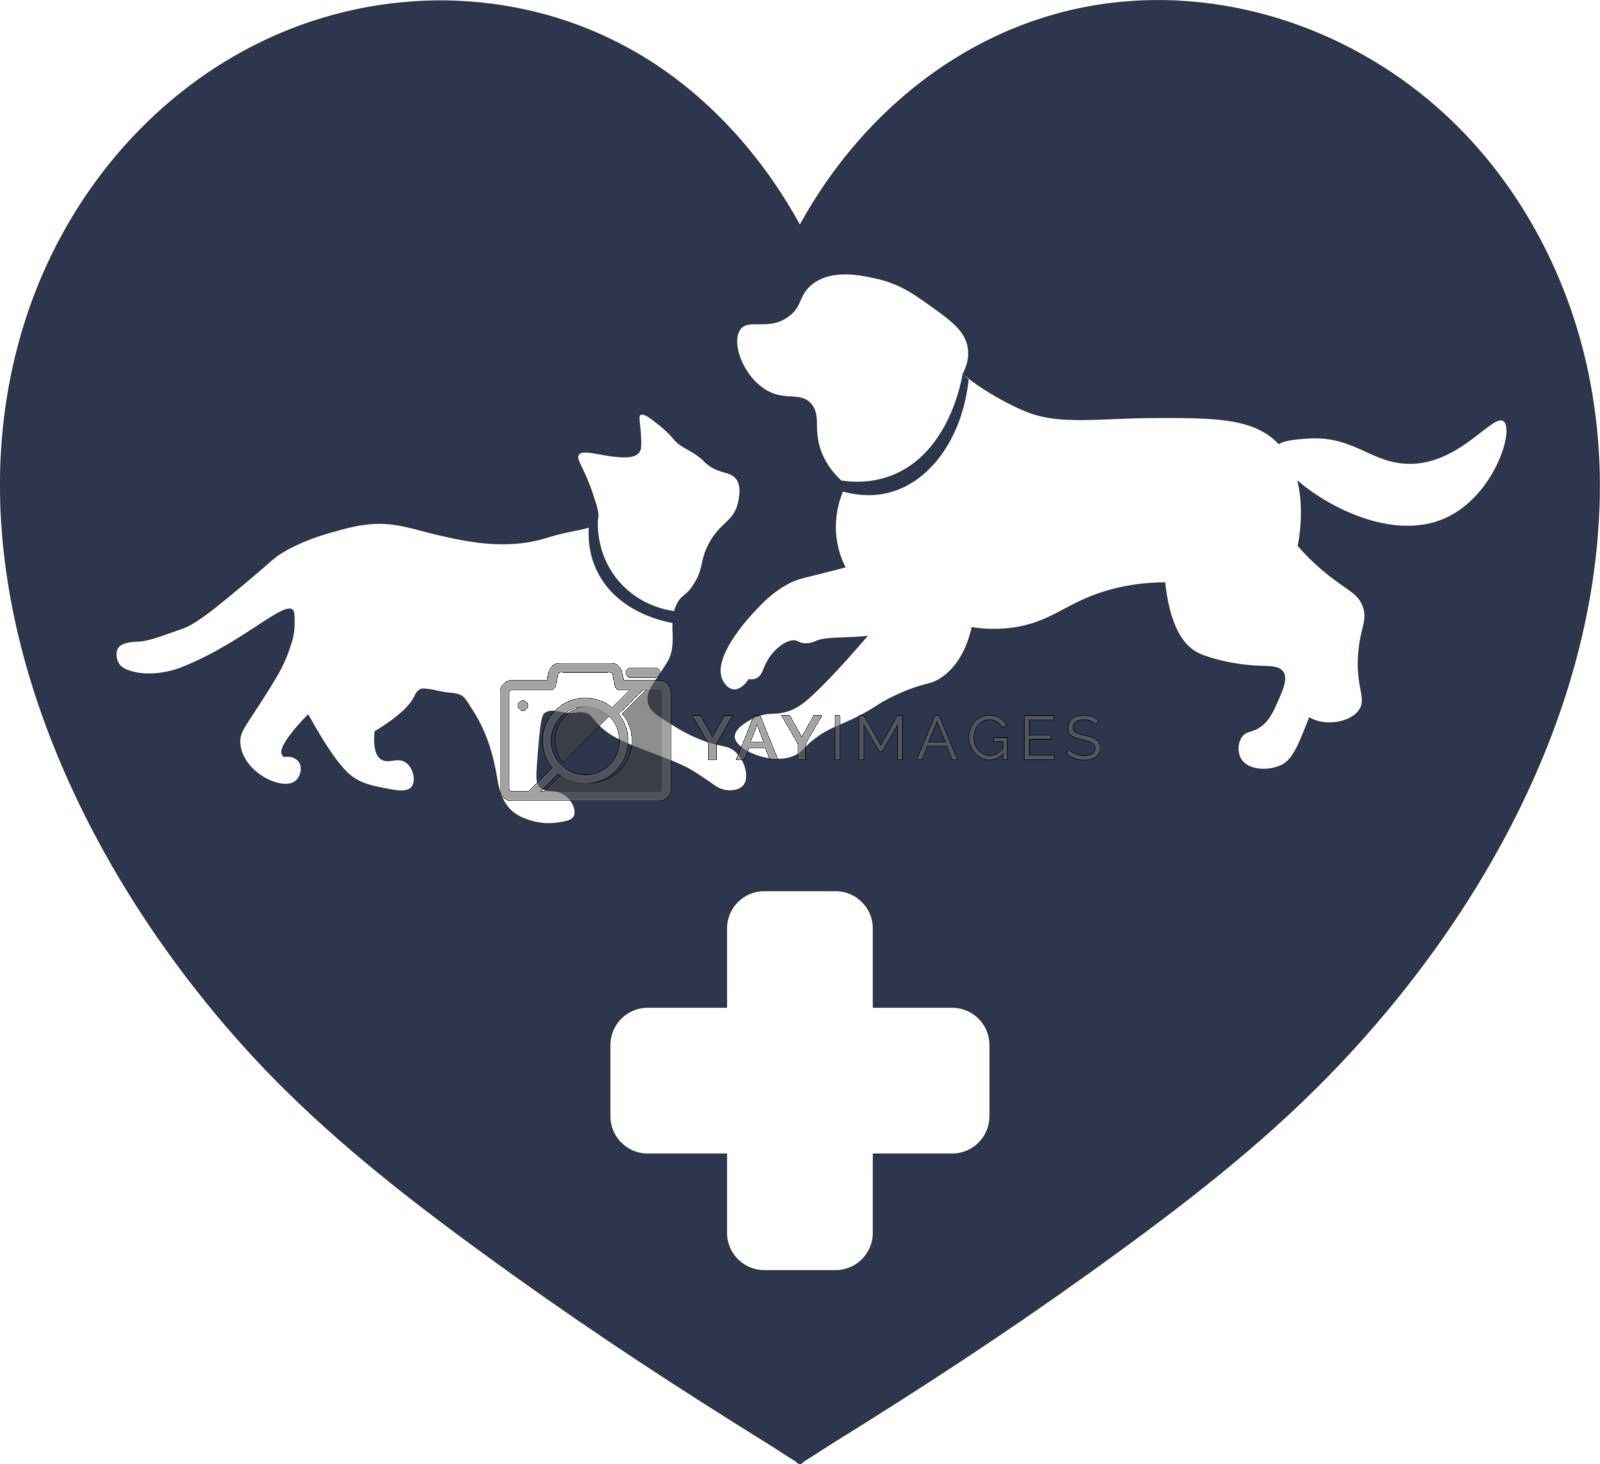 simple cute vet illustration with cat and dog silhouettes and medical cross in the heart